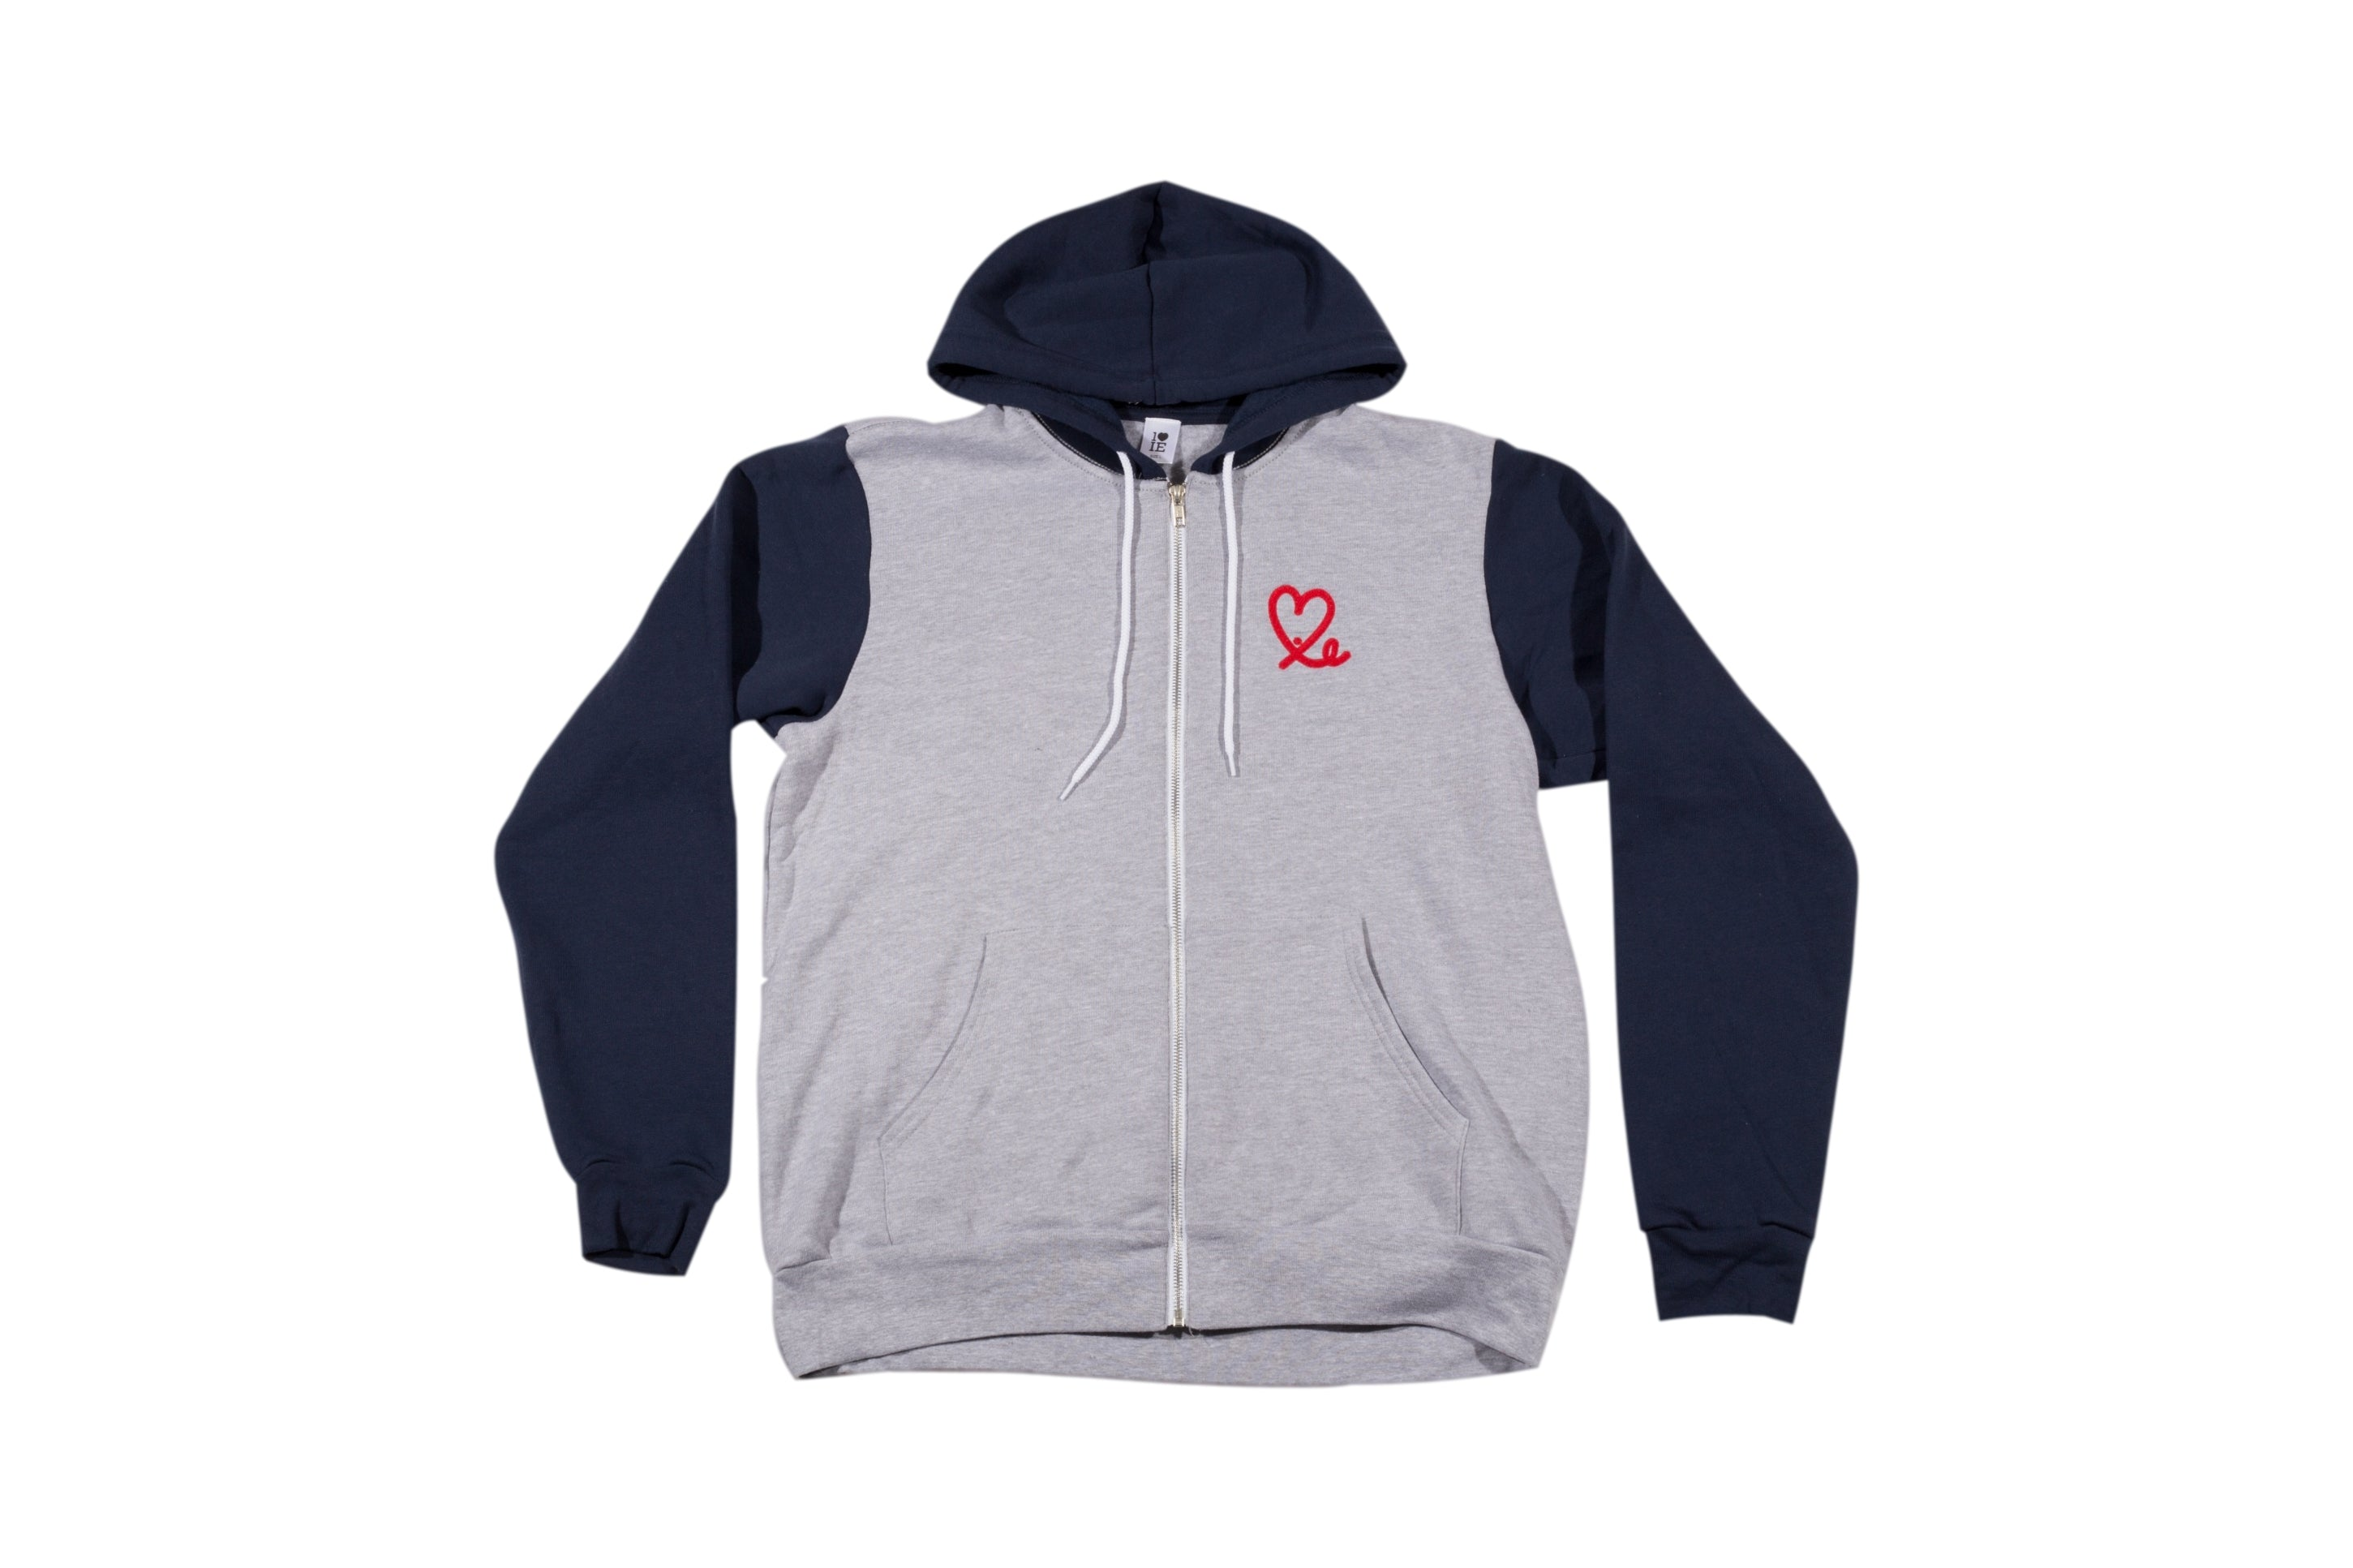 Two Tone Heather Navy Fleece Zip Up Hoodie